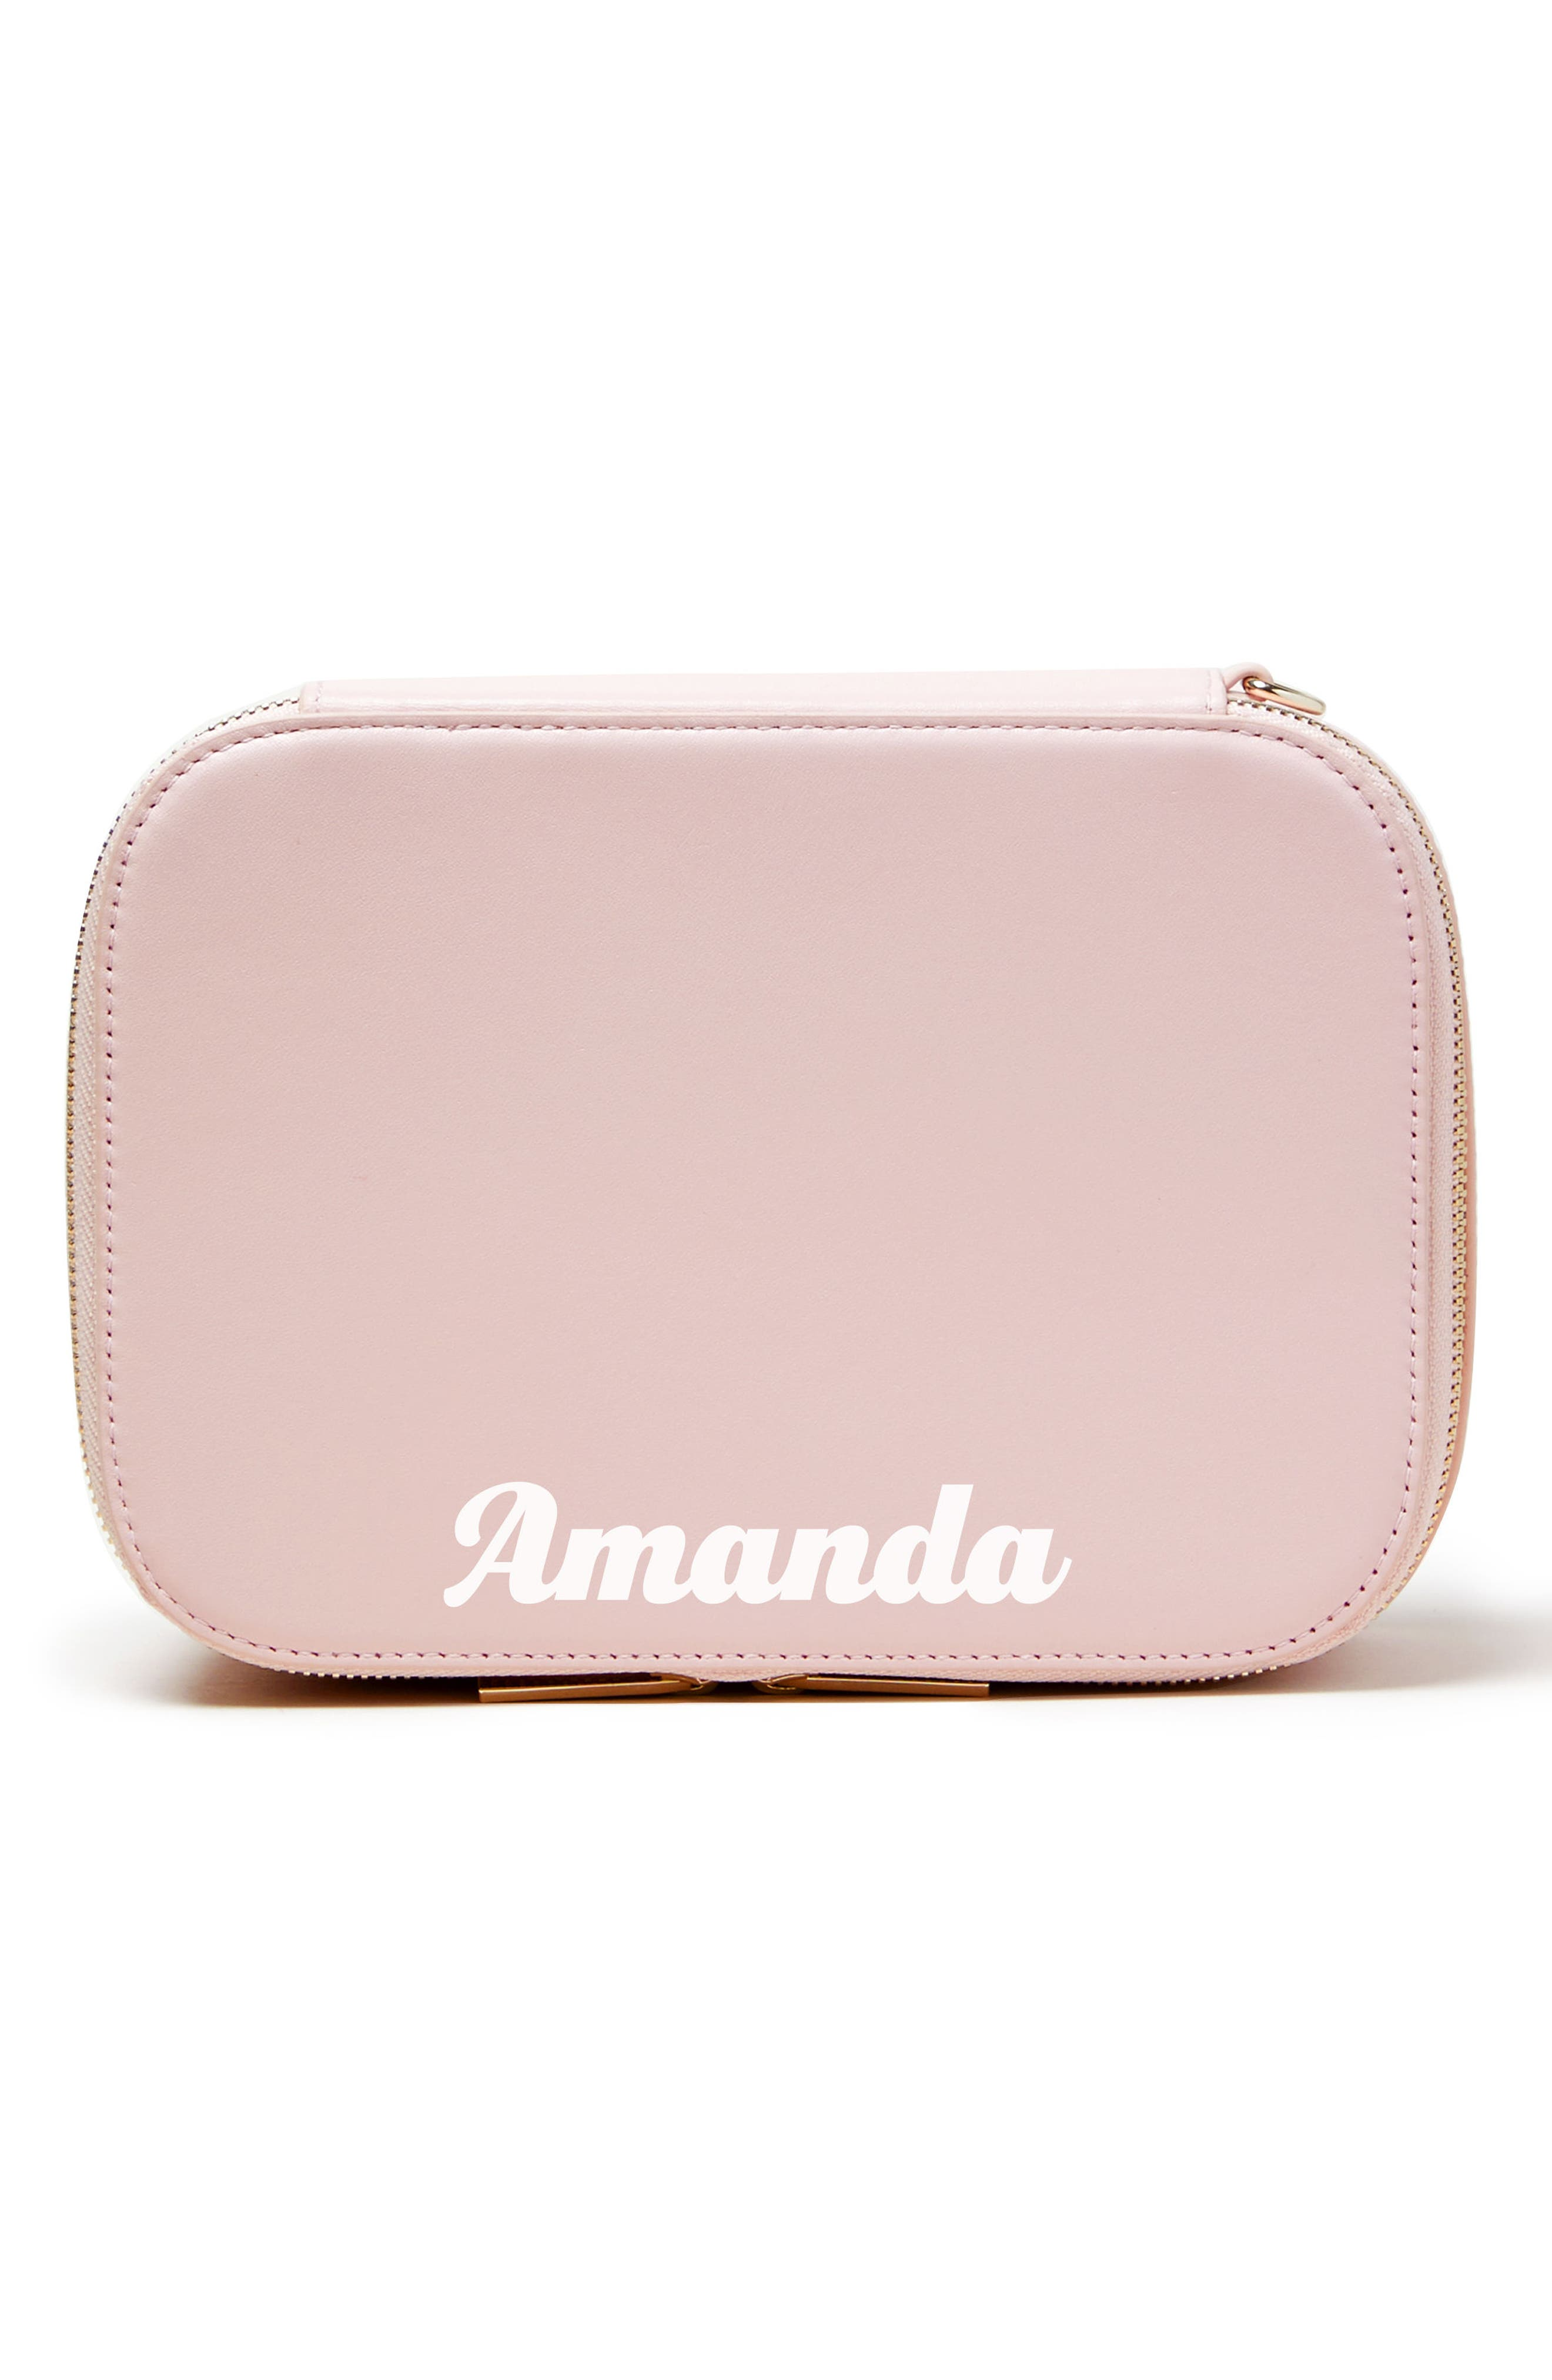 Bigger Personalized Makeup Bag,                         Main,                         color, Cotton Candy/ White